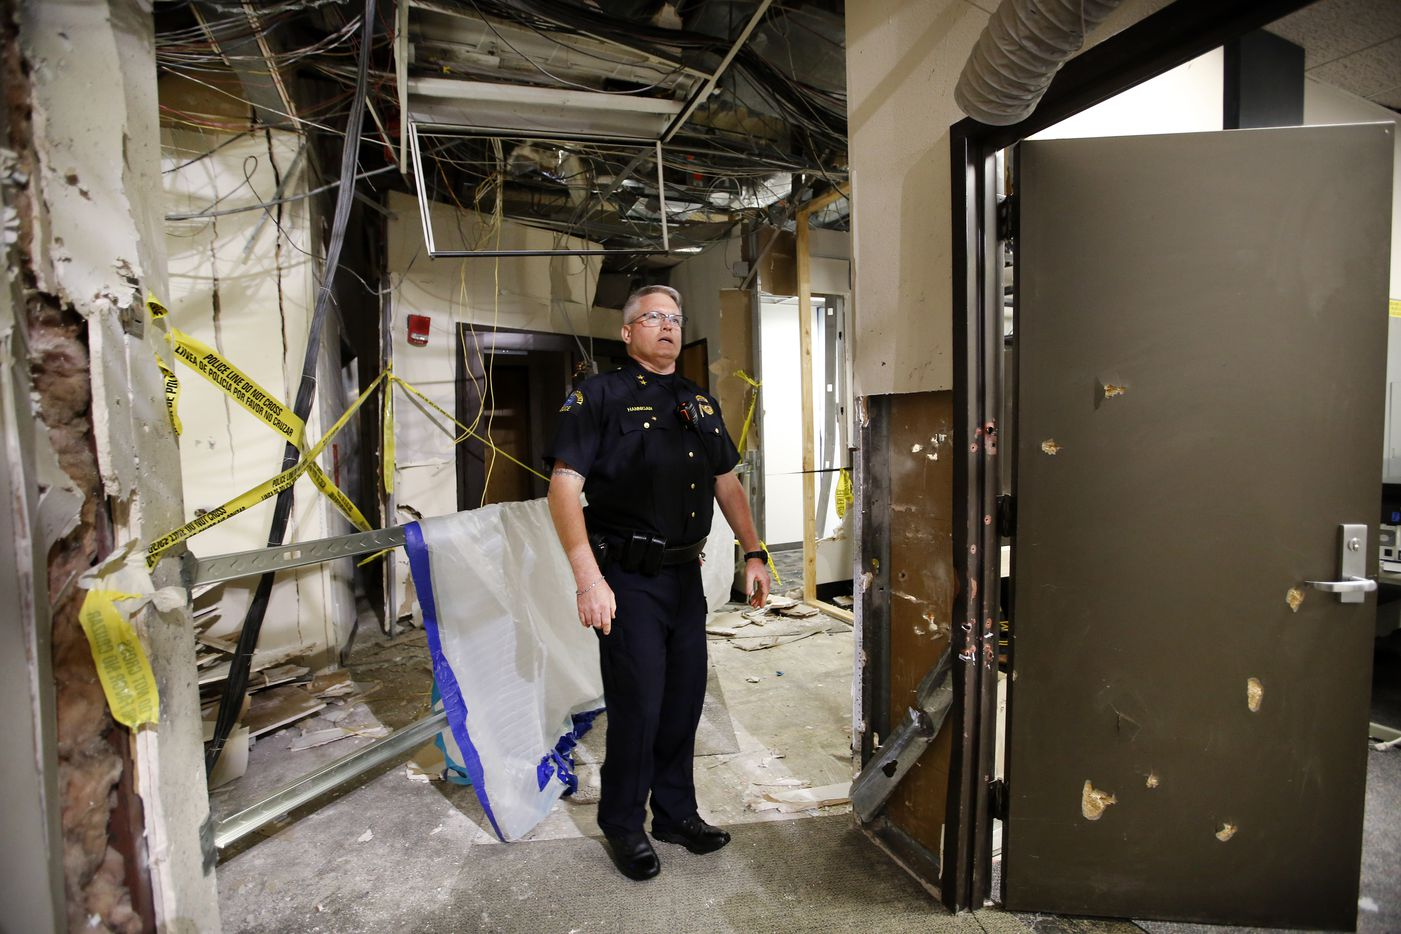 Dallas County College Police Chief Joseph Hannigan shows the spot where the gunman was cornered by police in a second-story hallway at El Centro College in downtown Dallas. The police detonated a bomb, killing the gunman and causing the structural damage.